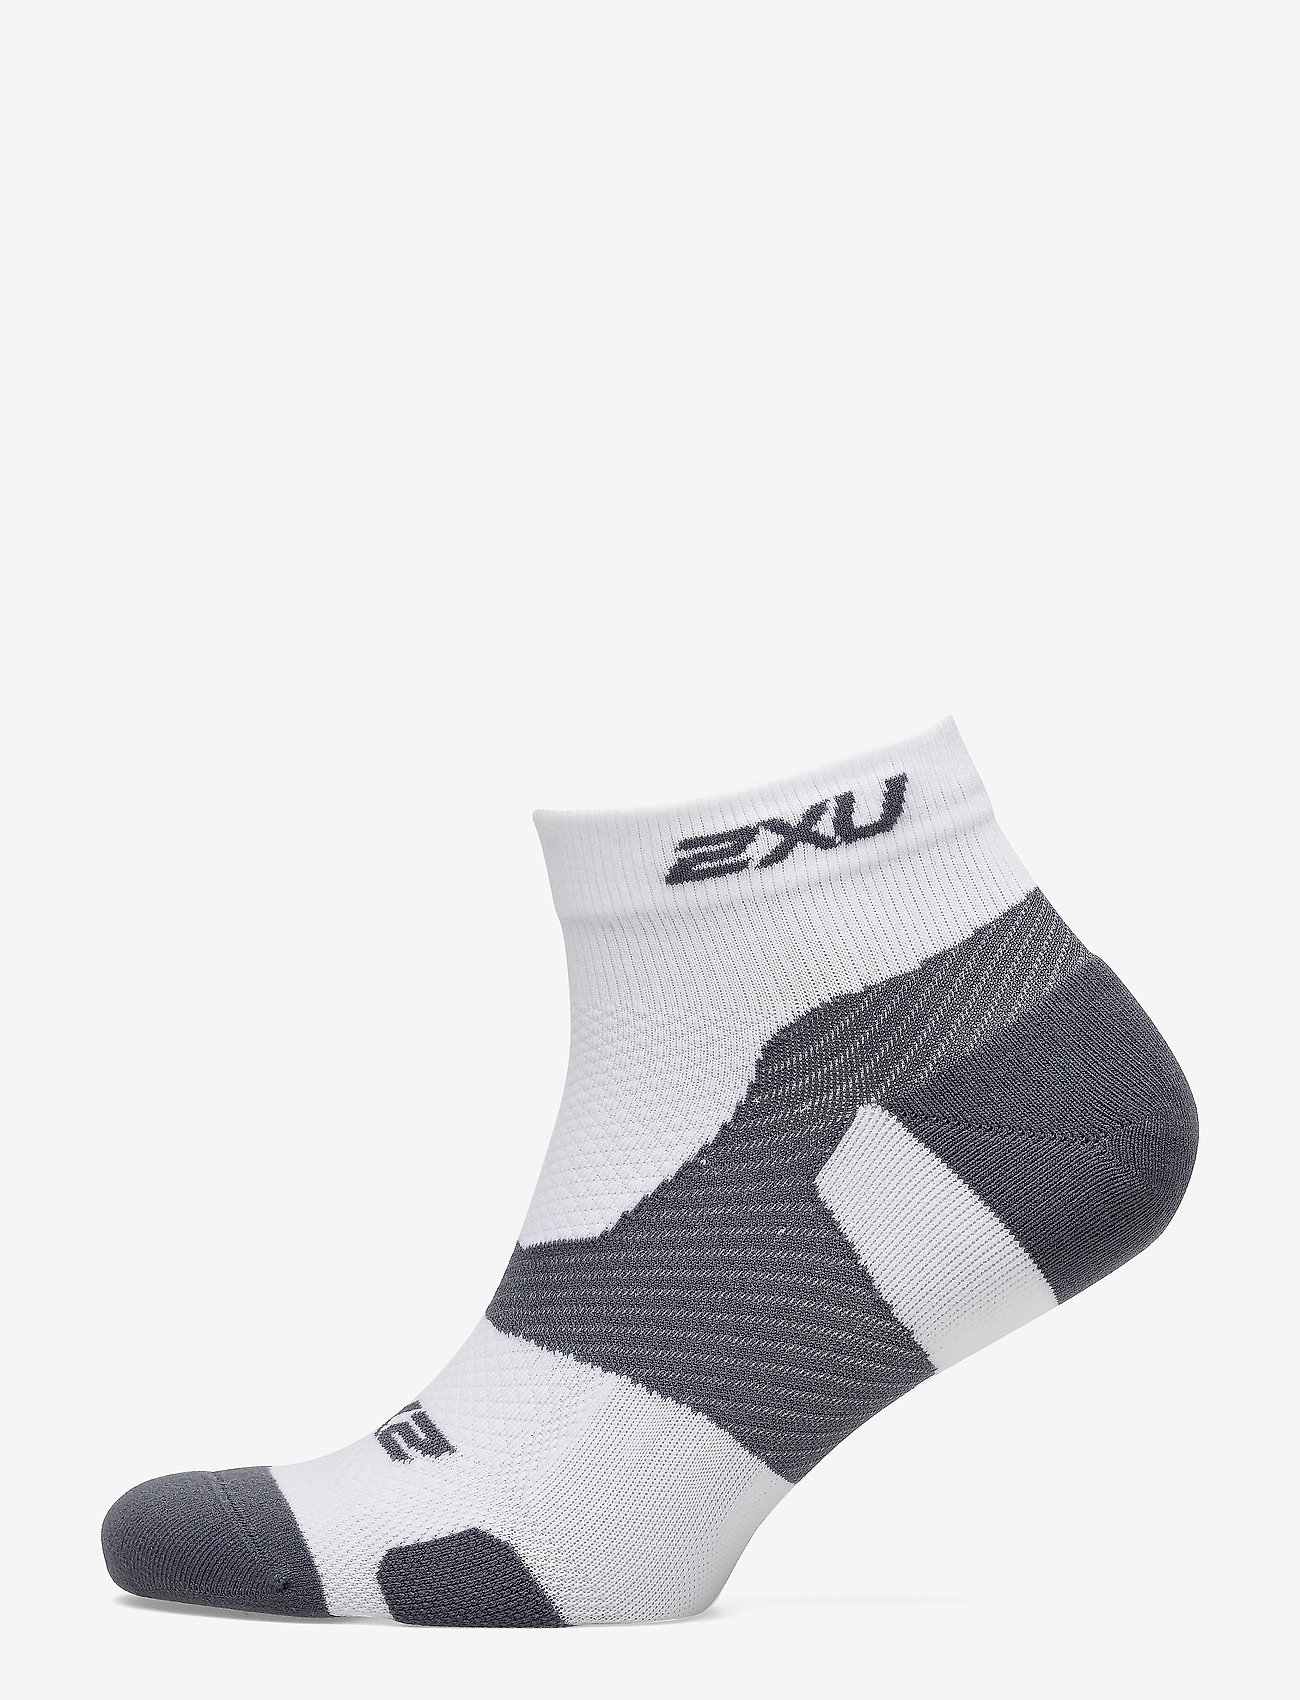 2XU - VECTR LIGHT CUSH 1/4 CREW SOC - ankelstrumpor - white/grey - 1